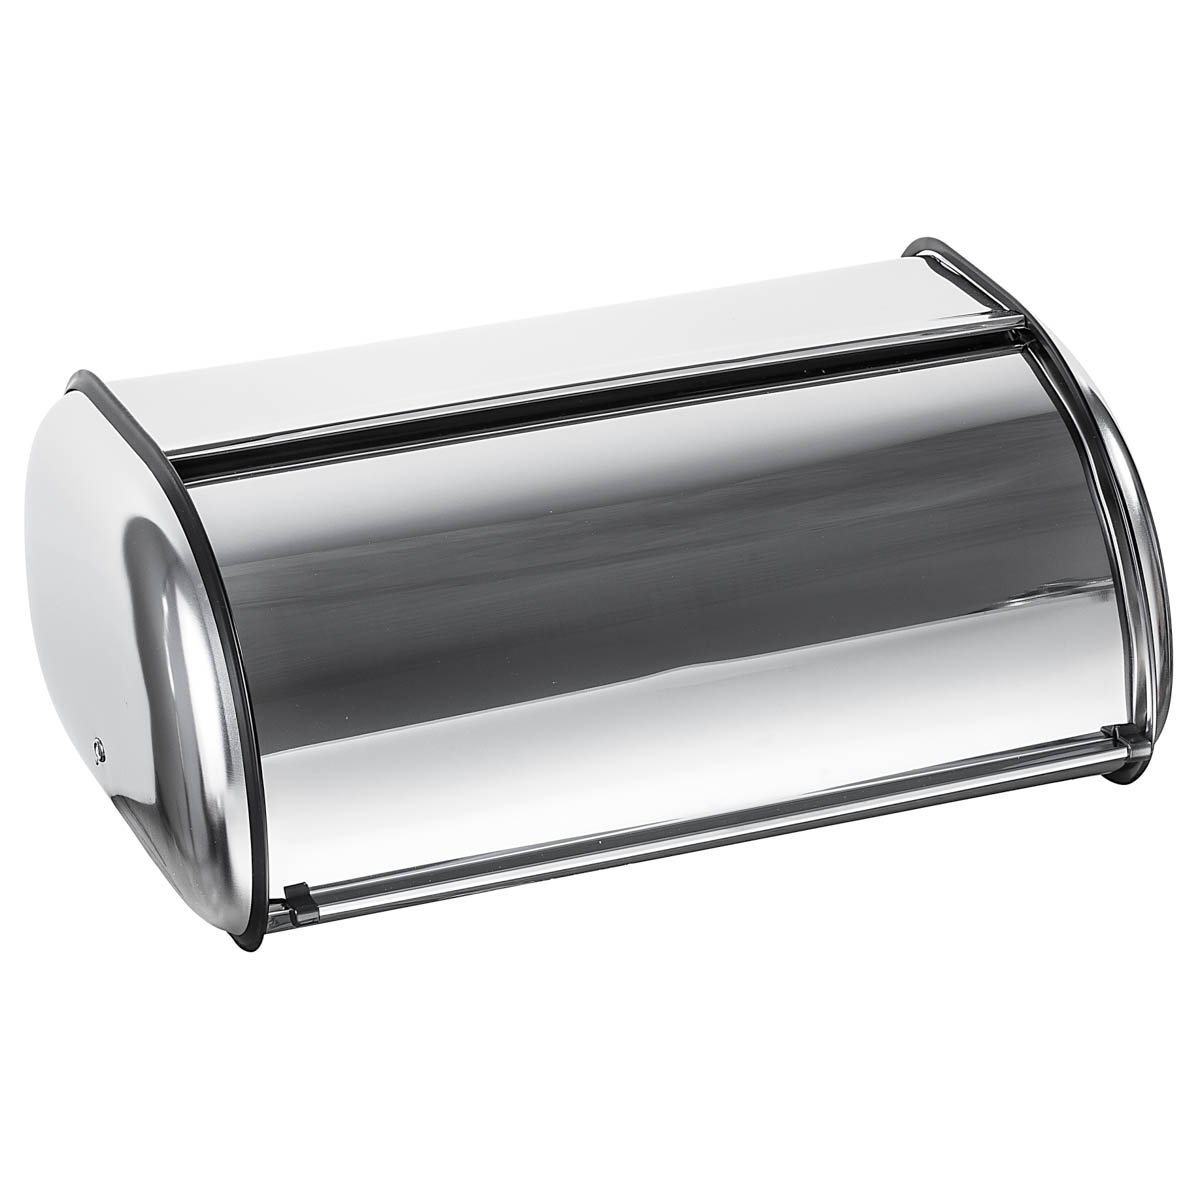 Stainless Steel Bread Box For Kitchen Bread Bin Bread Storage - Kitchen storage boxes